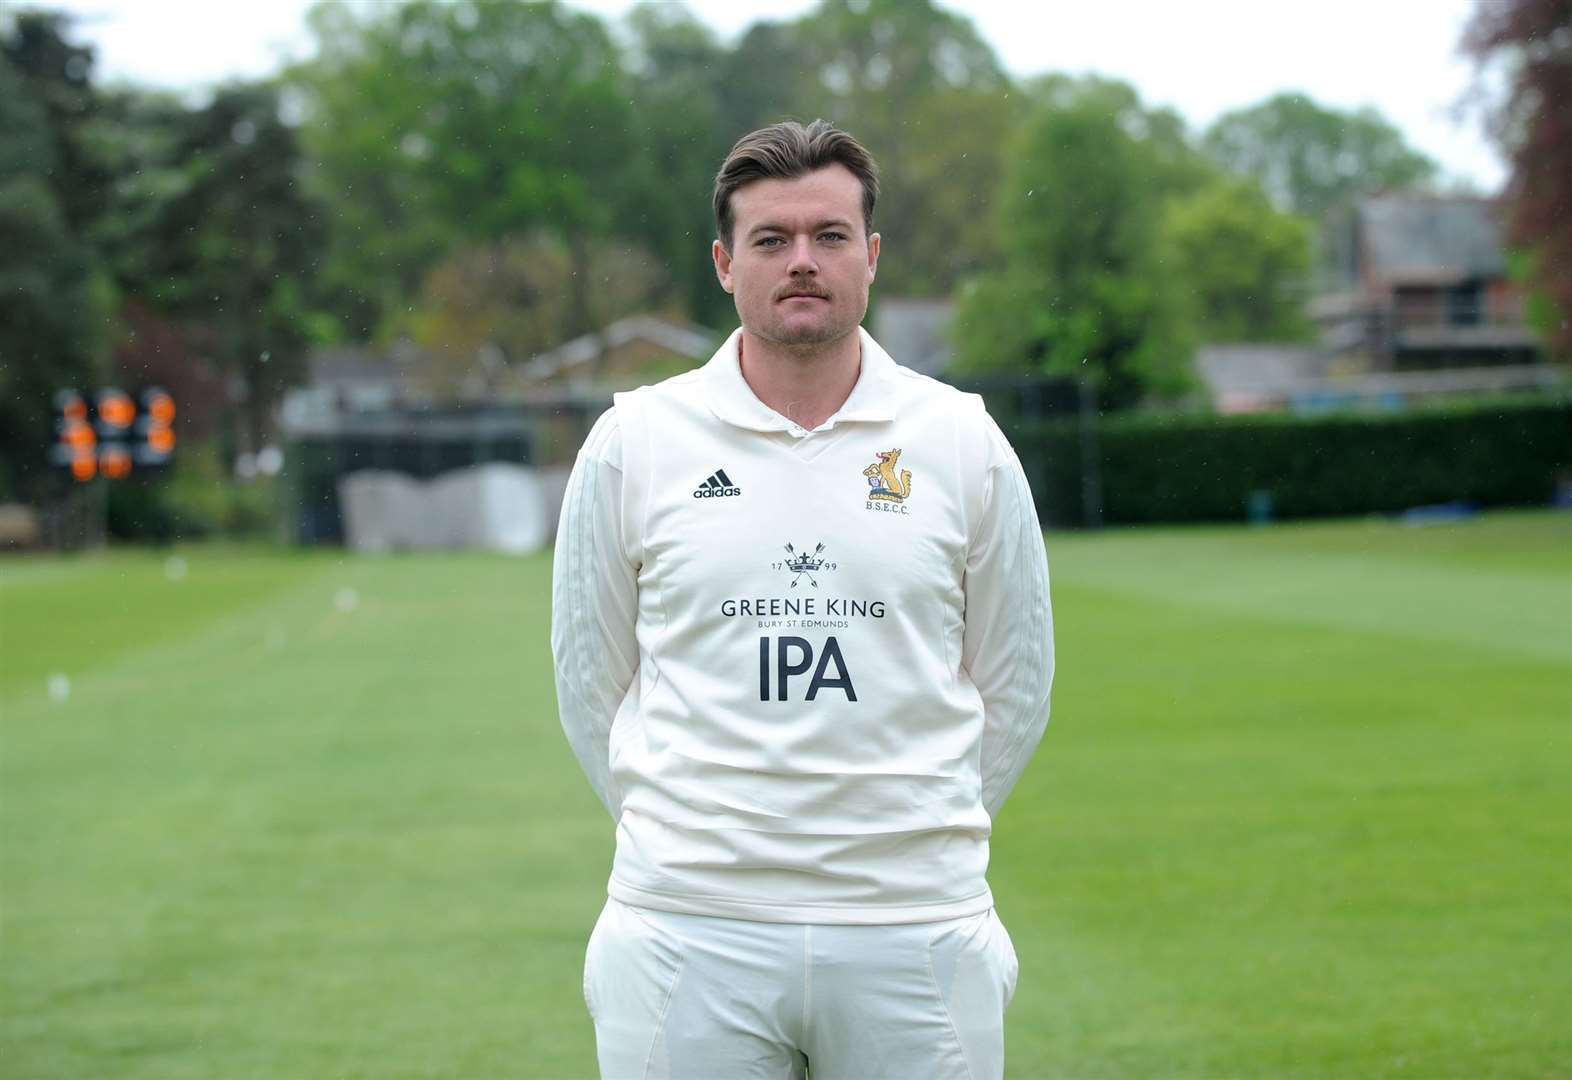 Bury St Edmunds cricketer turns professional